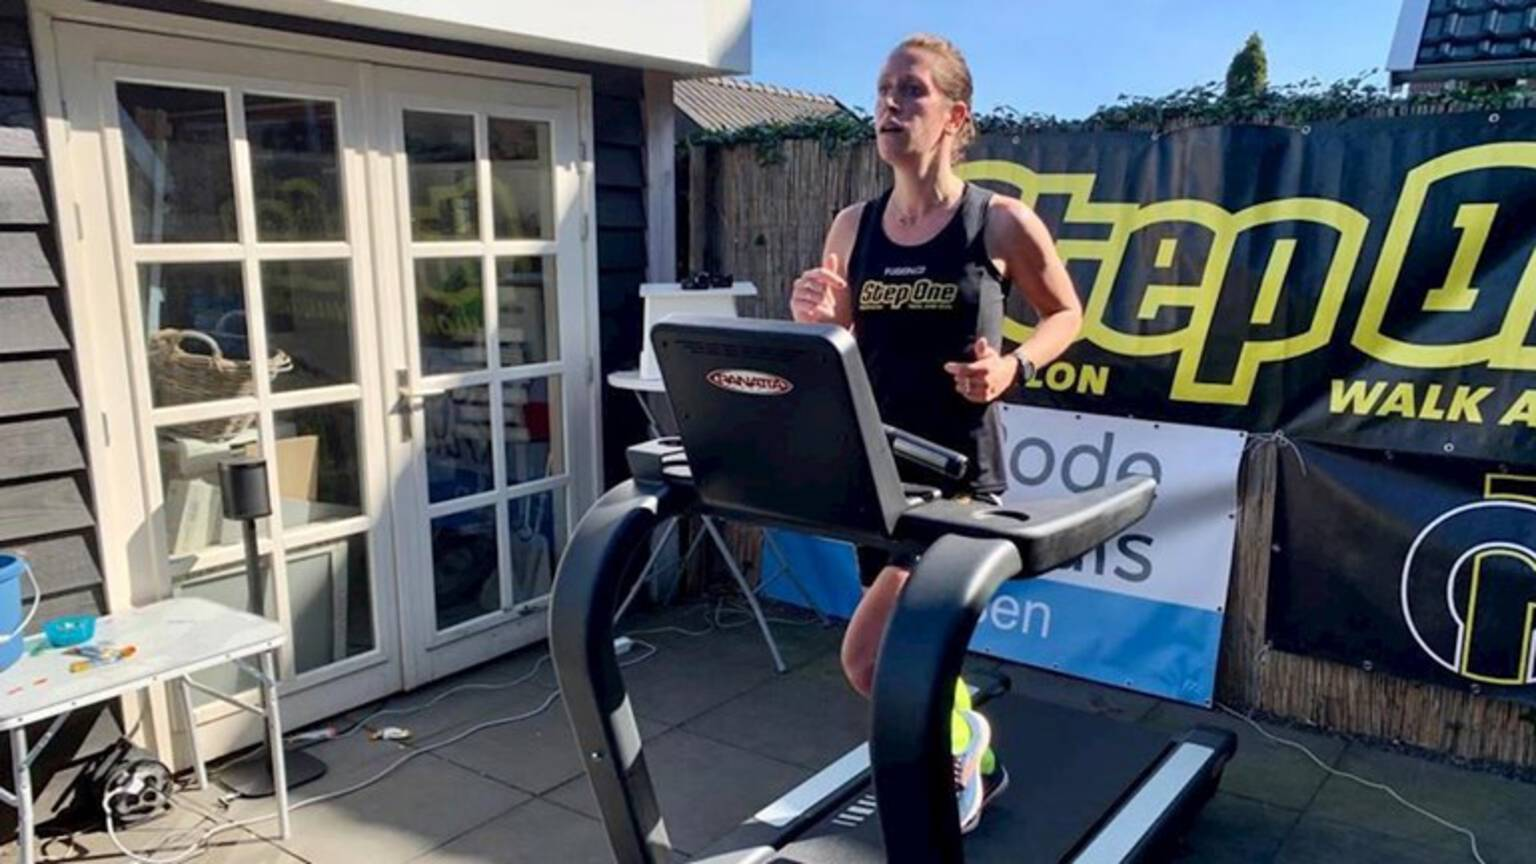 Sabine Wassink during her world record treadmill marathon, photo by RTV Oost